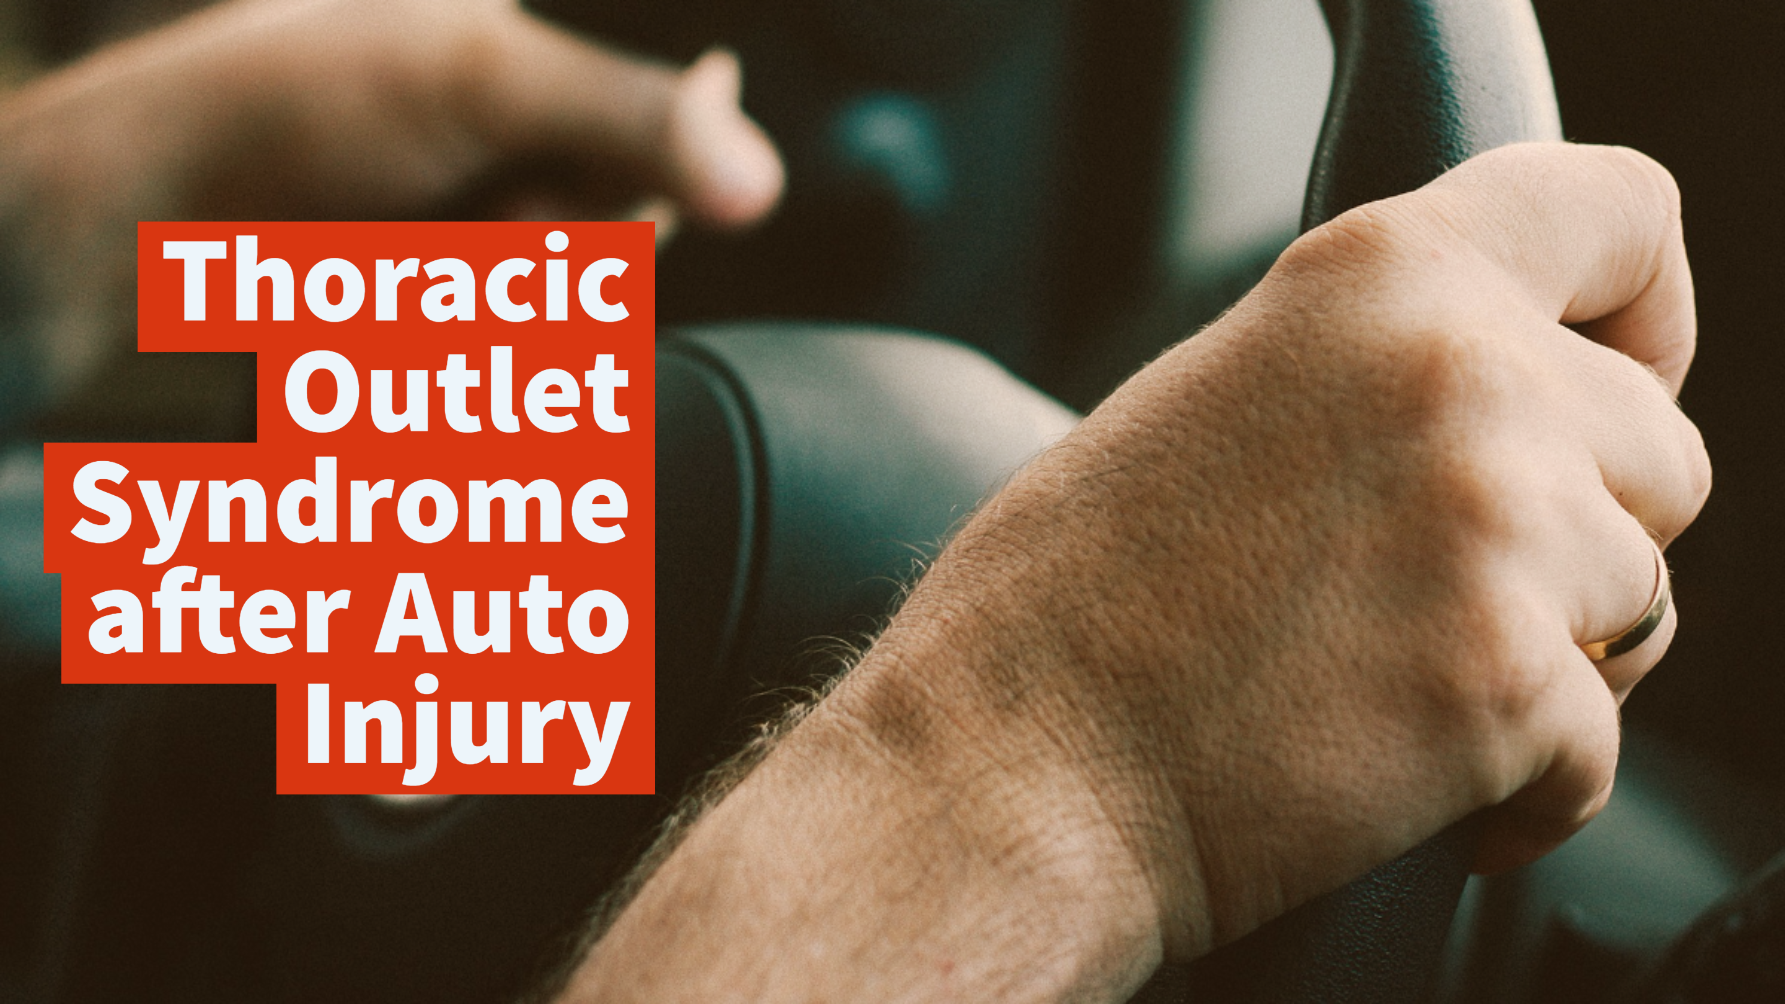 Video Thoracic Outlet Syndrome After Auto Injury